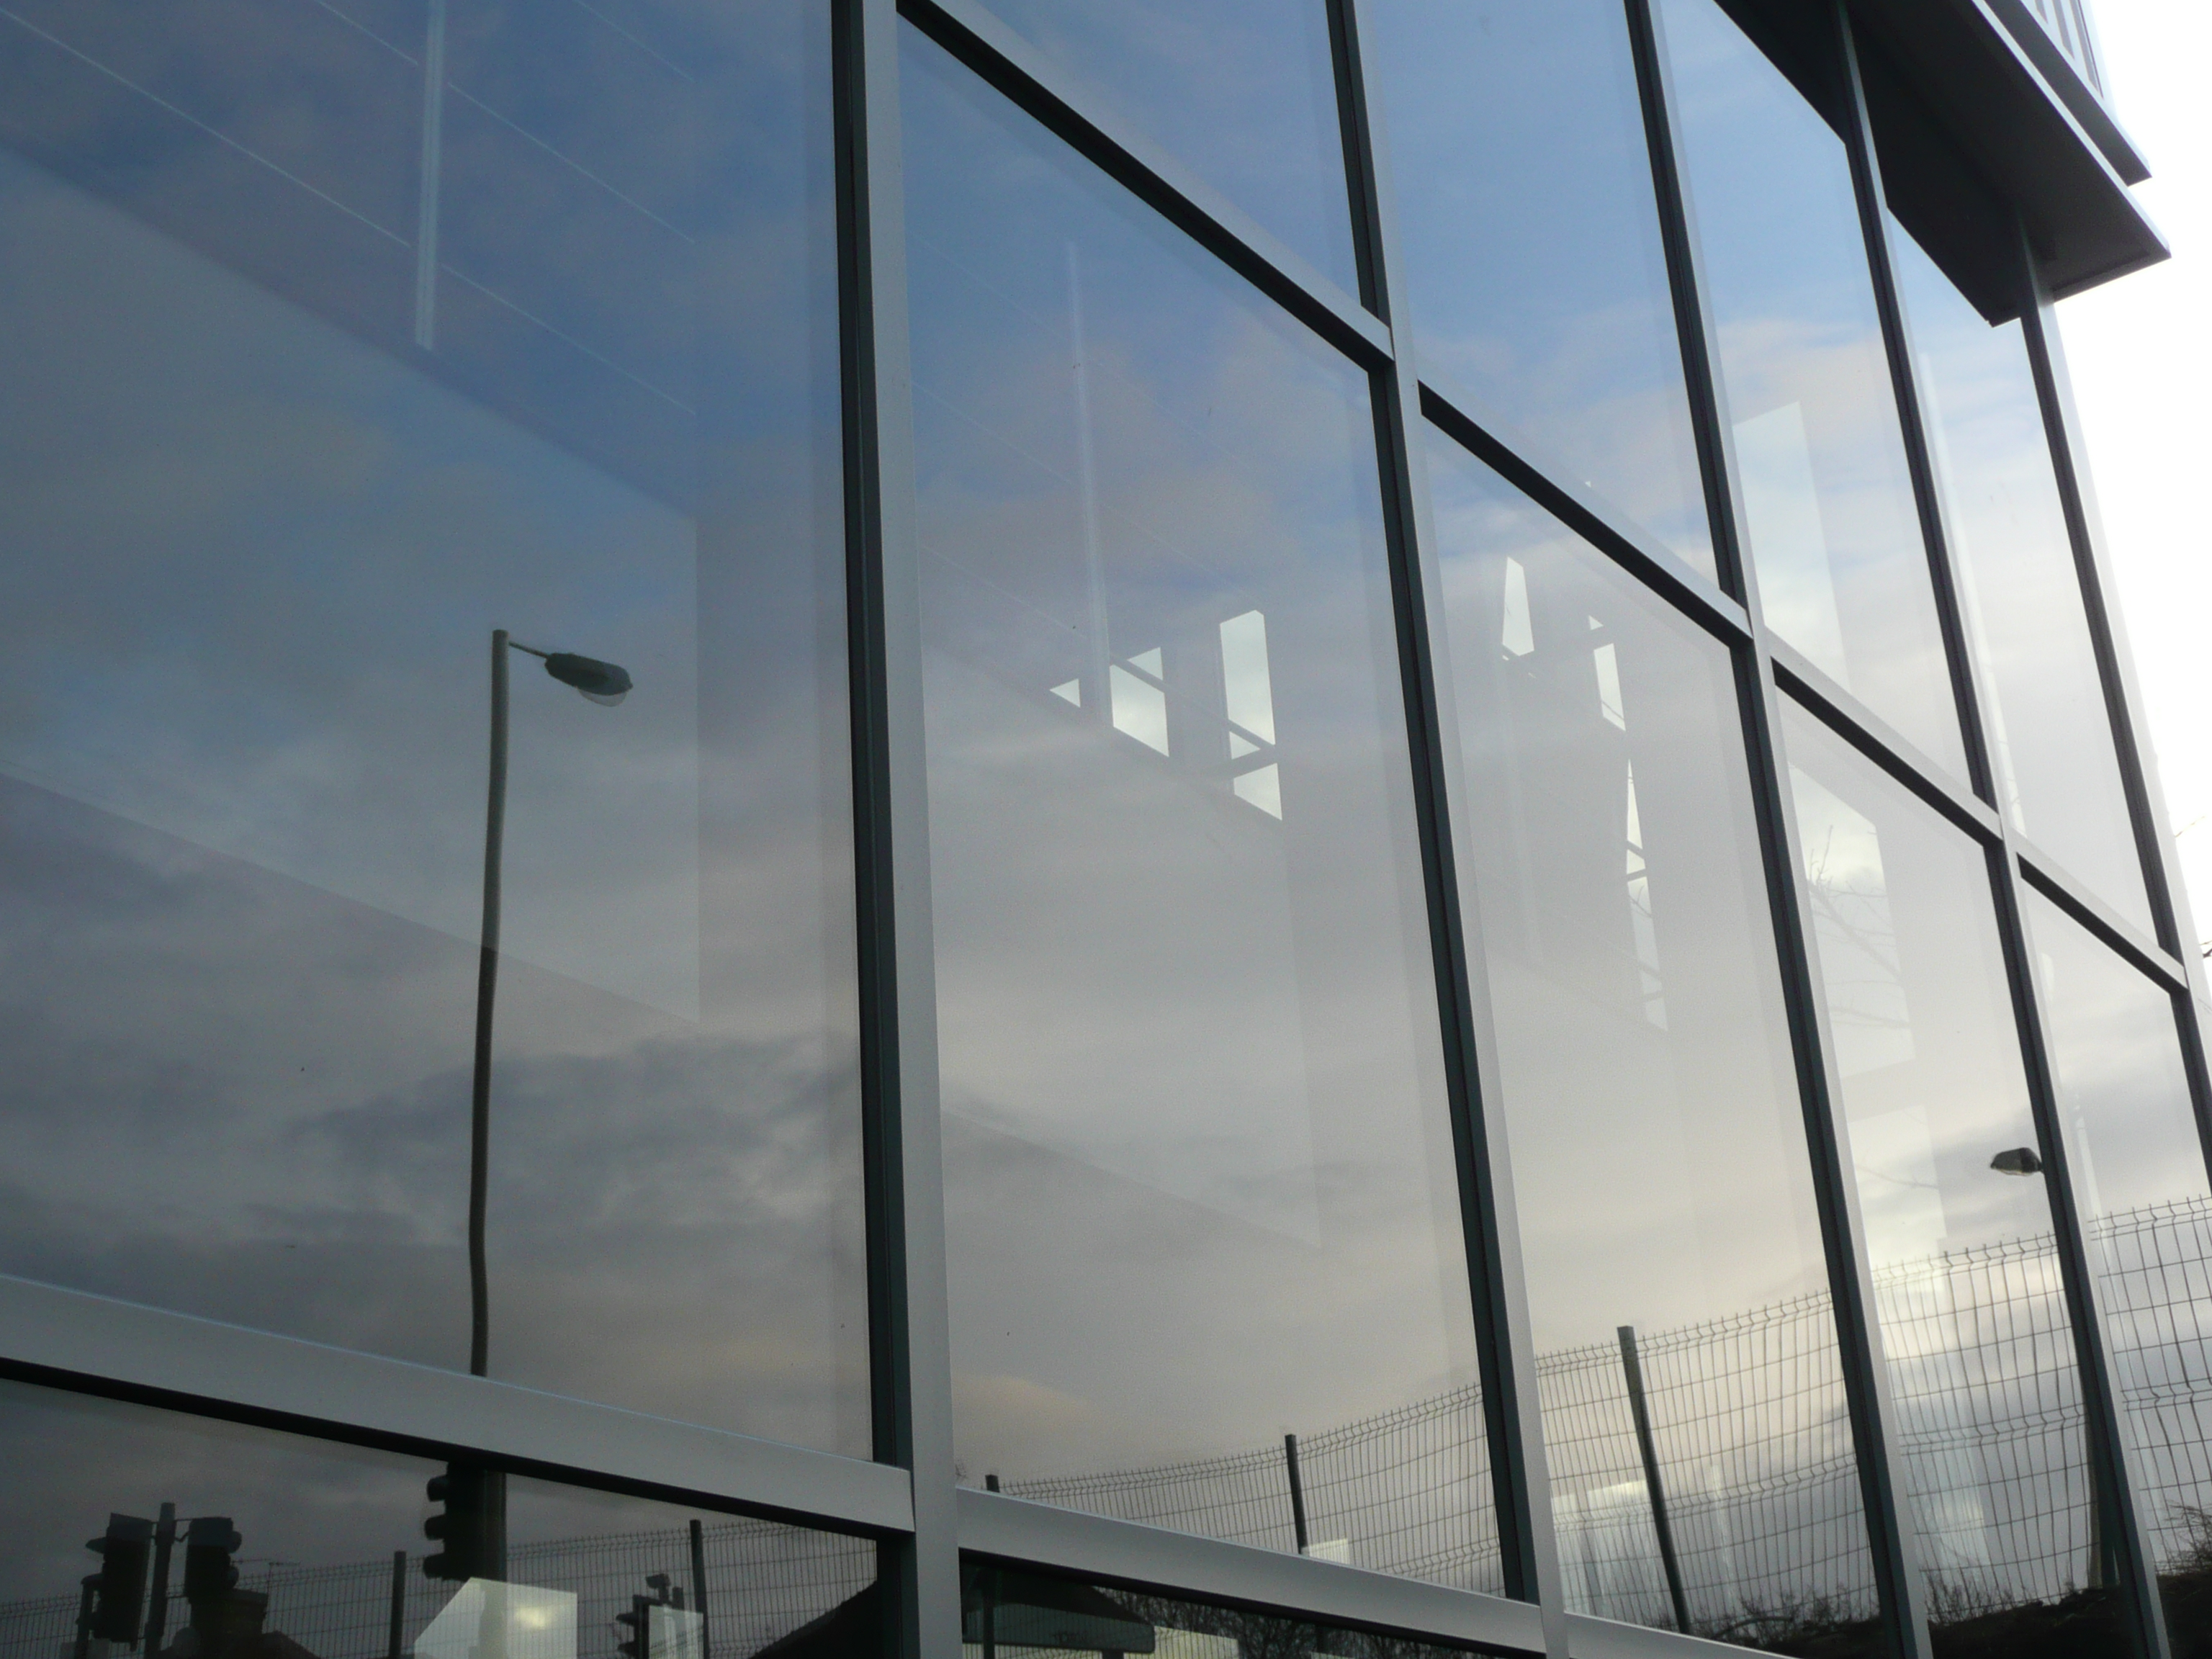 office glass windows. UPVC Gutters And Fascia,Three Storey Houses,Large Office Windows. Whatever The Challenge UGC Will Have Complete Success!! Glass Windows